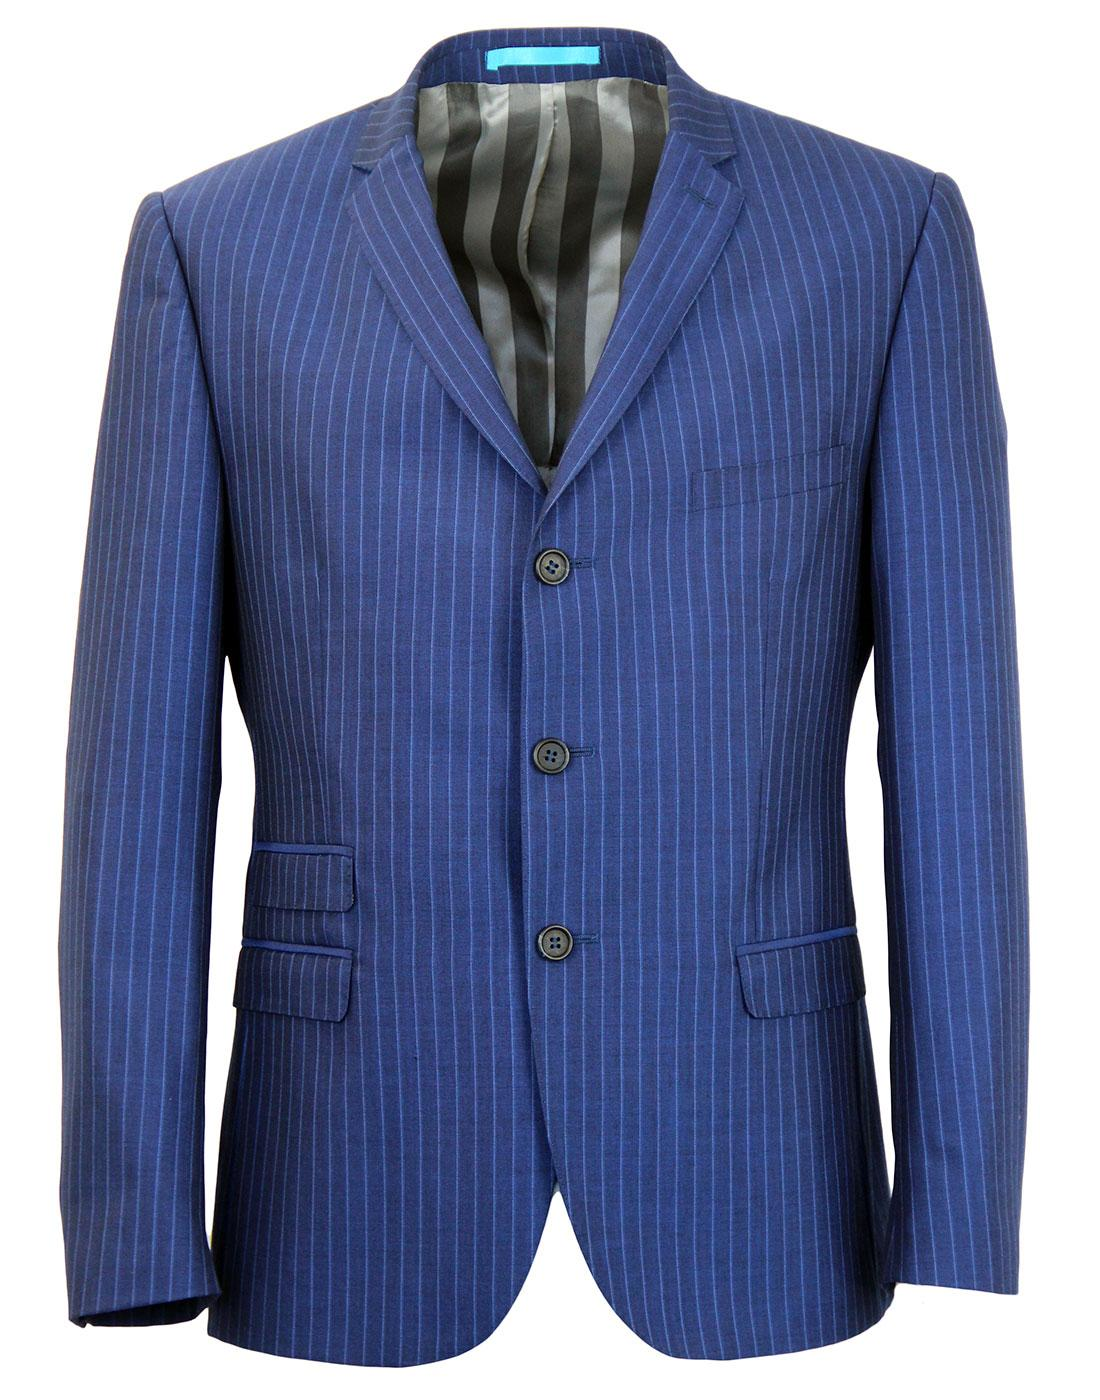 MADCAP ENGLAND Royal Pinstripe 3 btn Suit Jacket